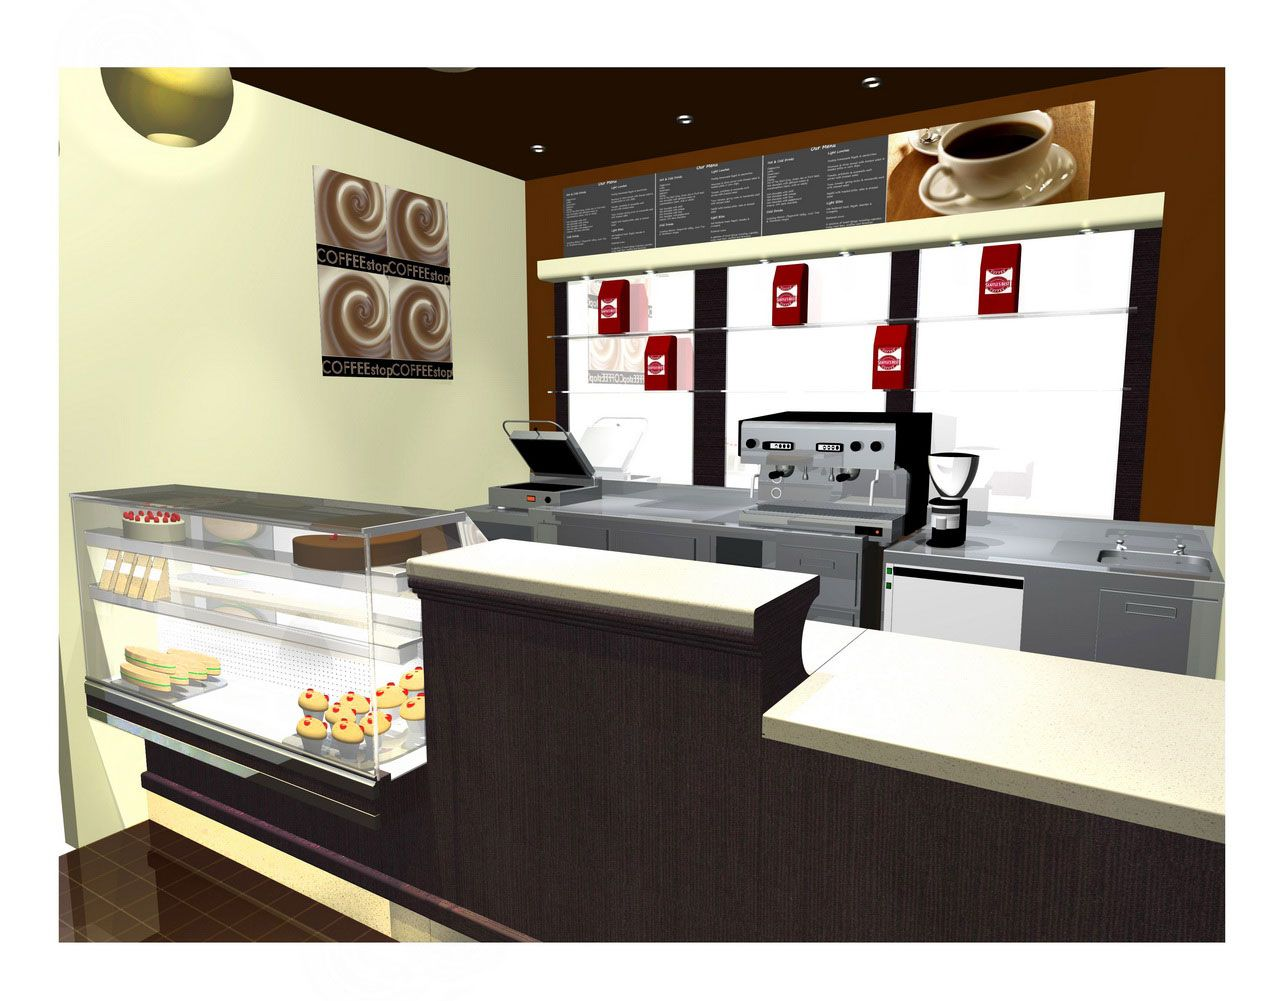 Coffee shop design ideas coffee shop design ideas for Coffee shop kitchen designs